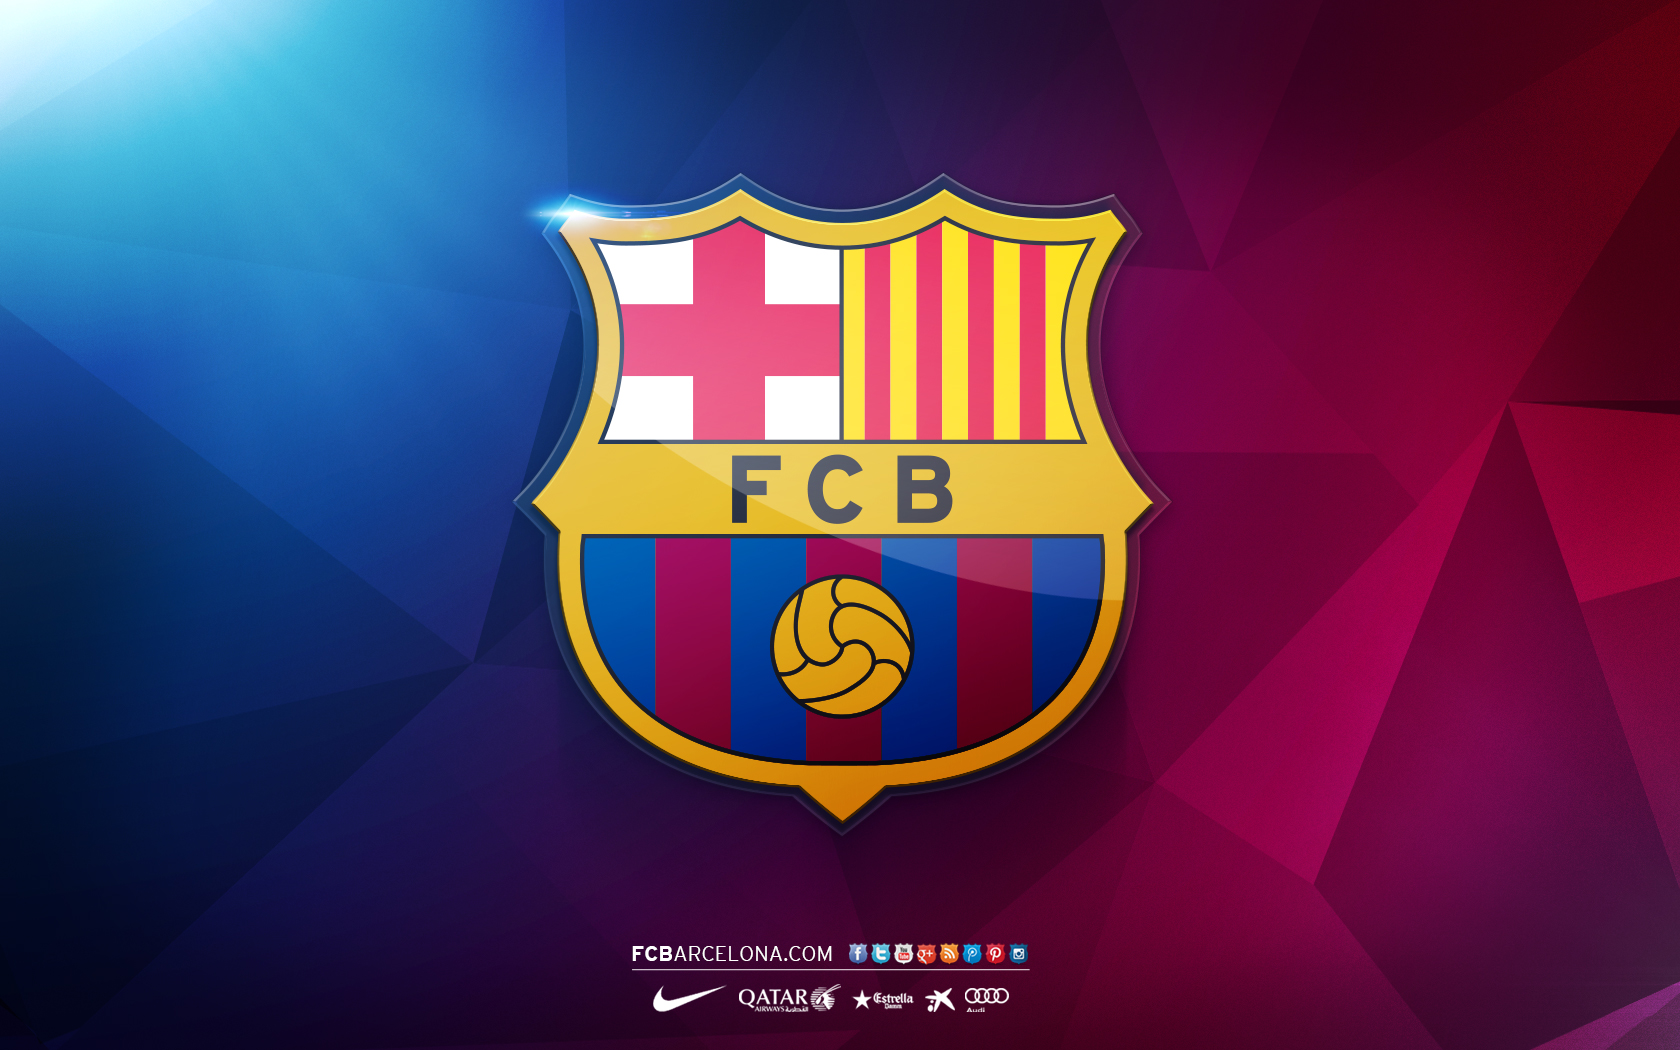 Fc Barcelona Logo Wallpaper For Desktop.